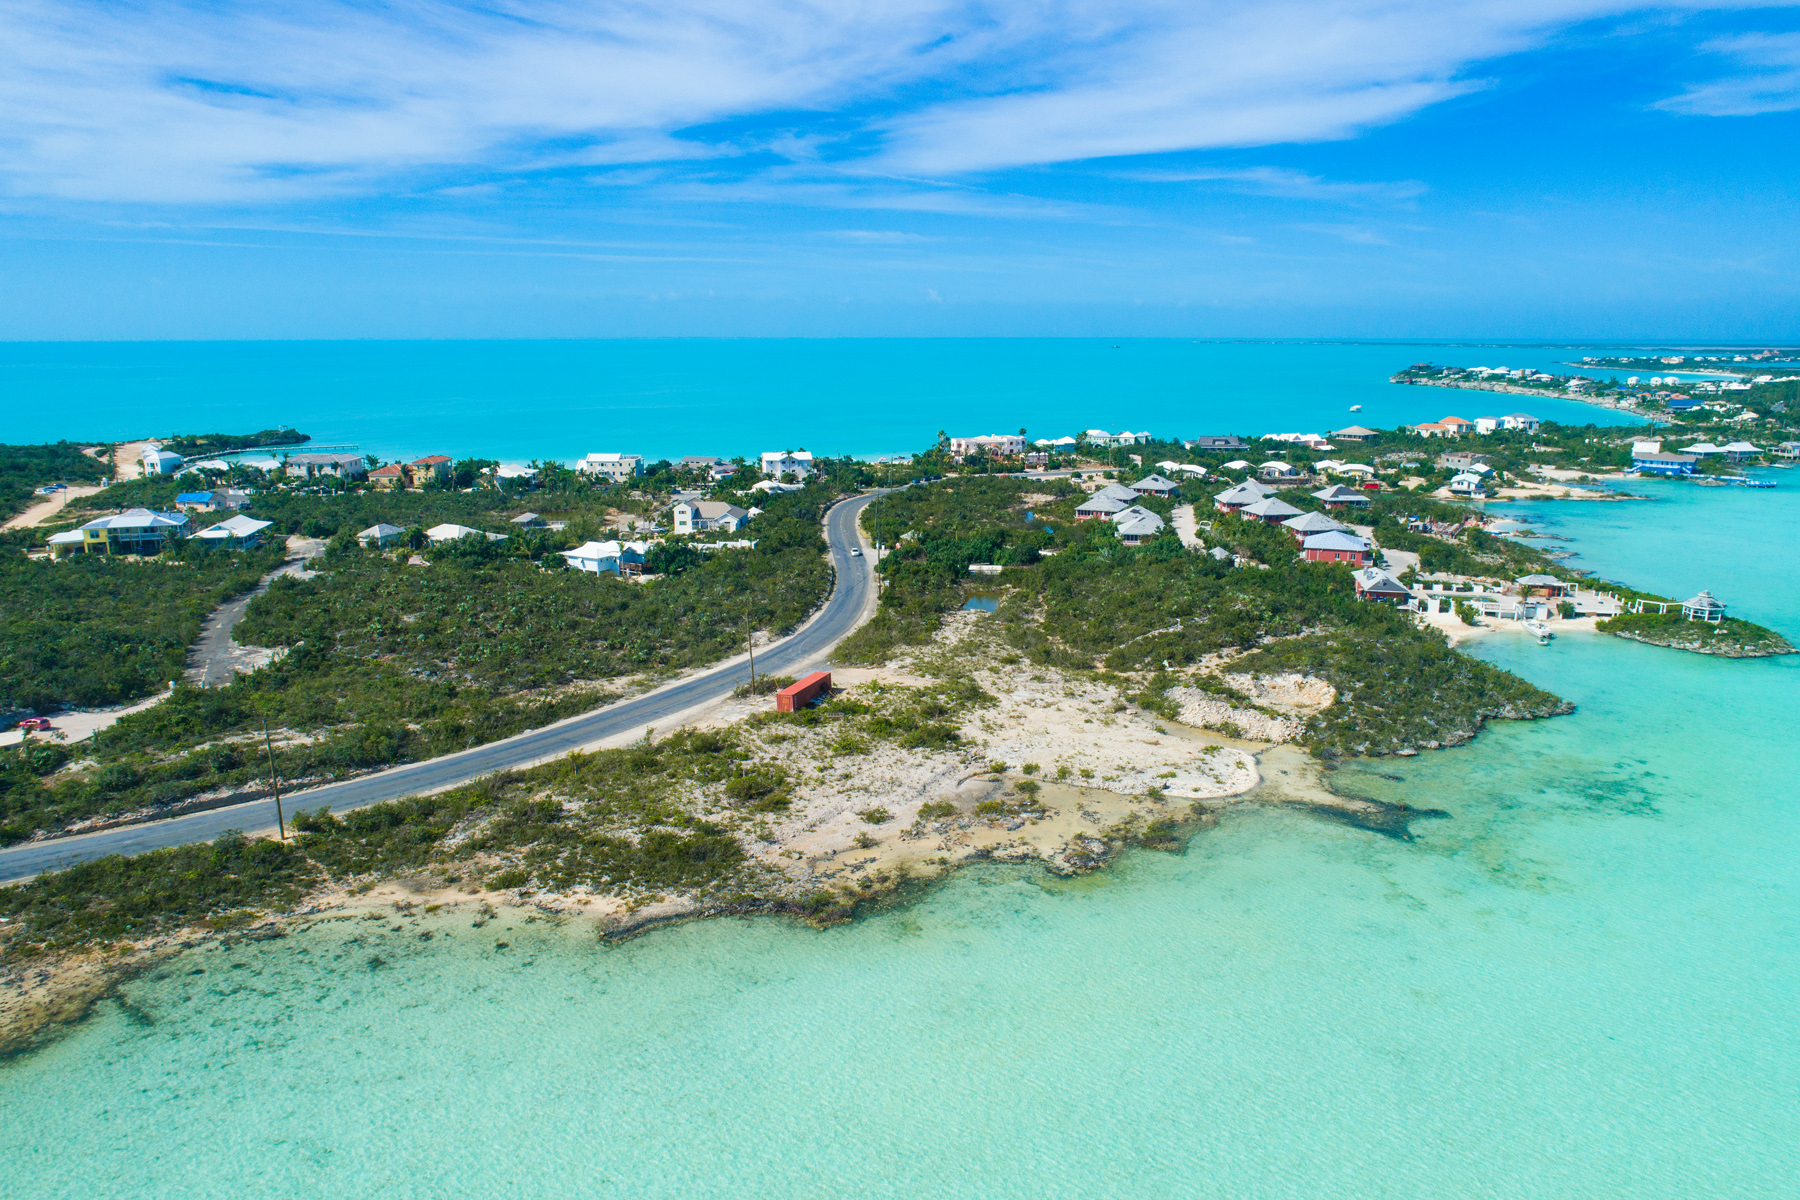 Land for Sale at Chalk Sound Waterfront Lots Chalk Sound, Providenciales Turks And Caicos Islands